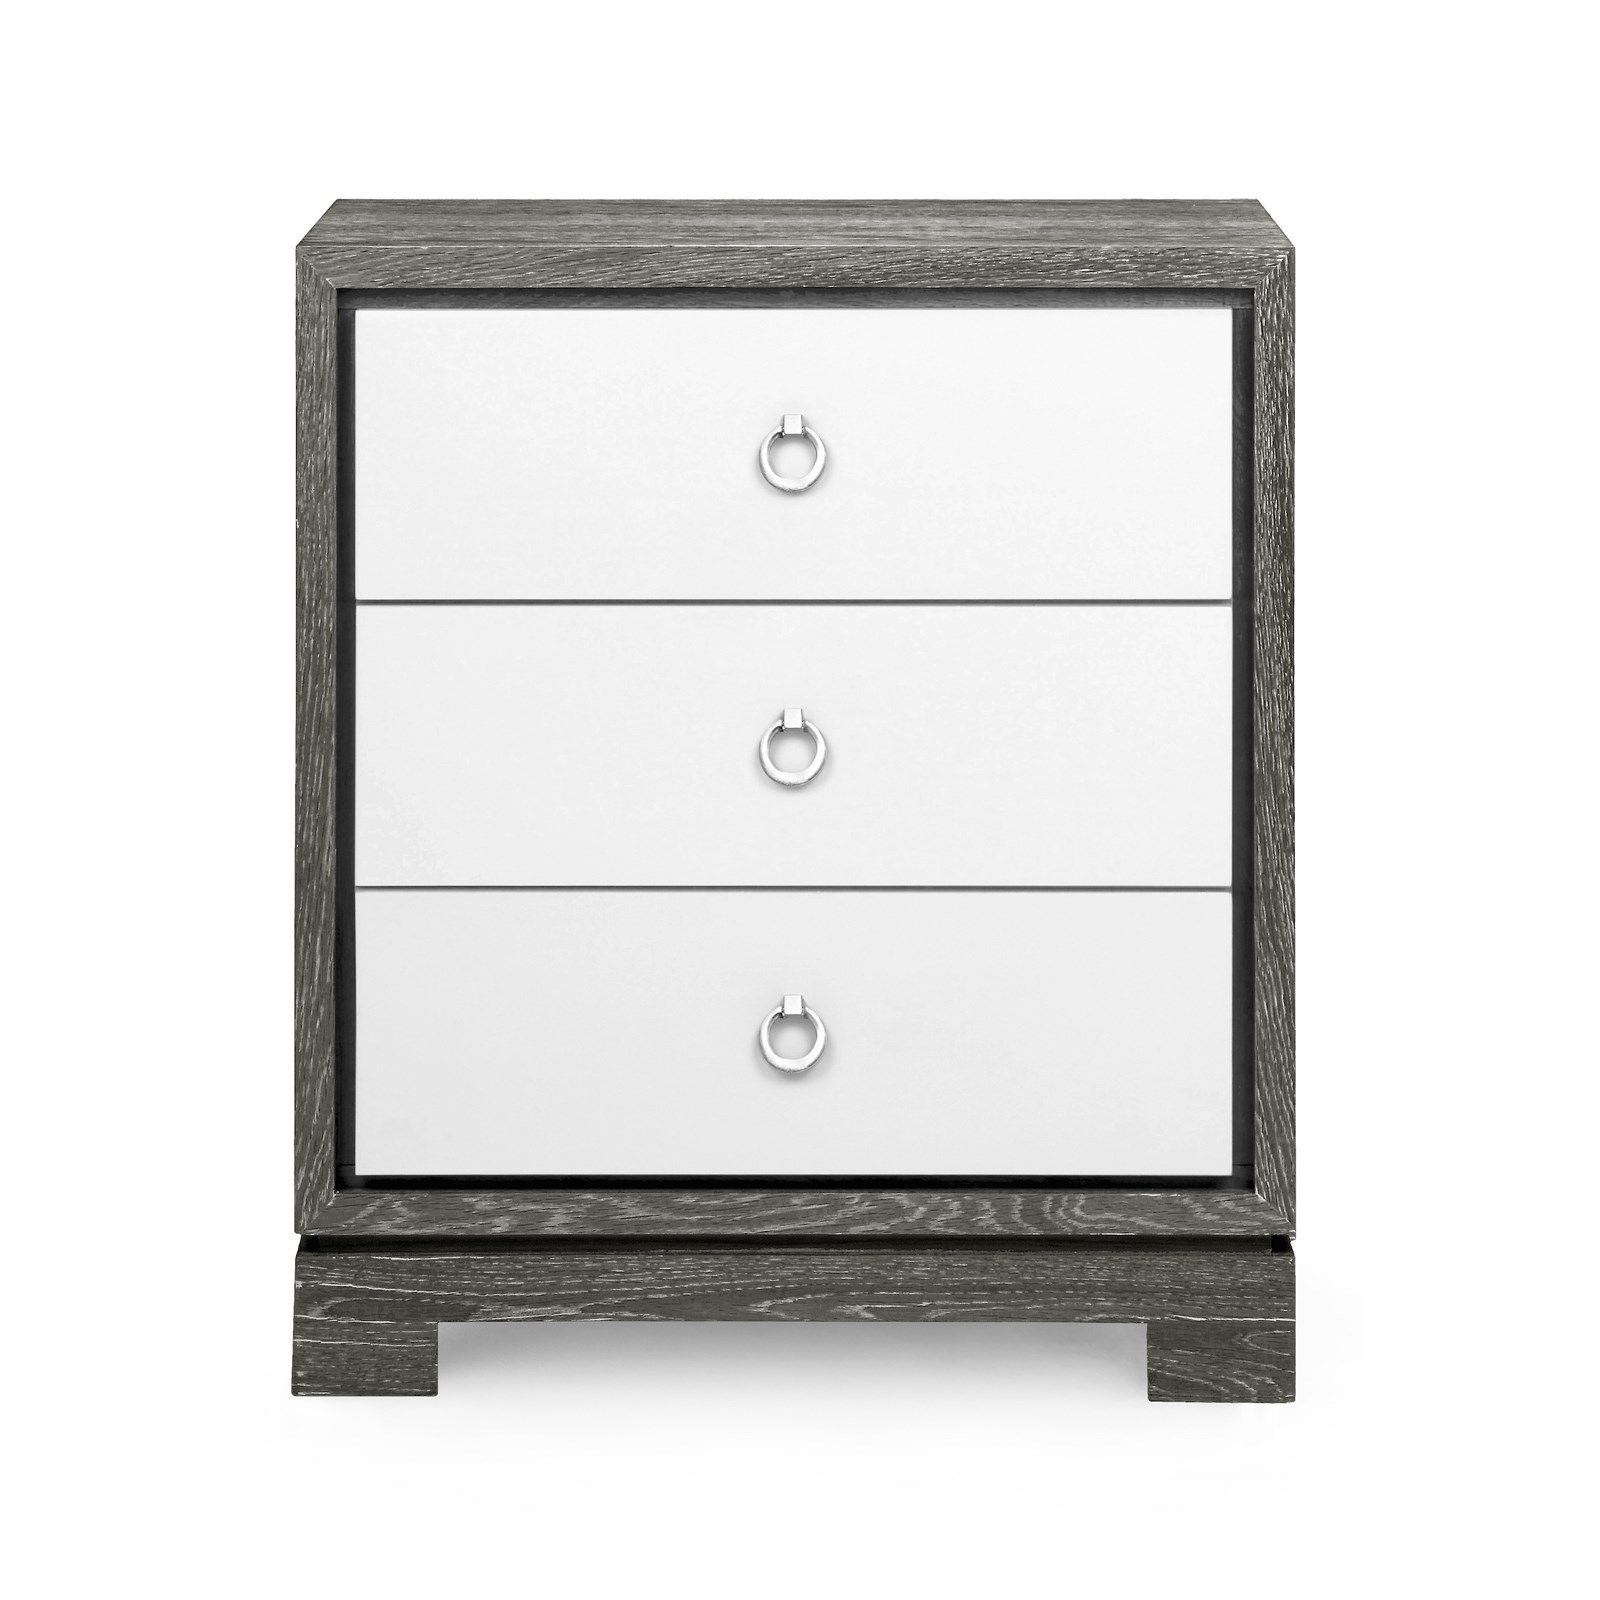 Beau Berkeley 3 Drawer Side Table W/ Chrome Pulls, Gray   Bungalow 5 Boys